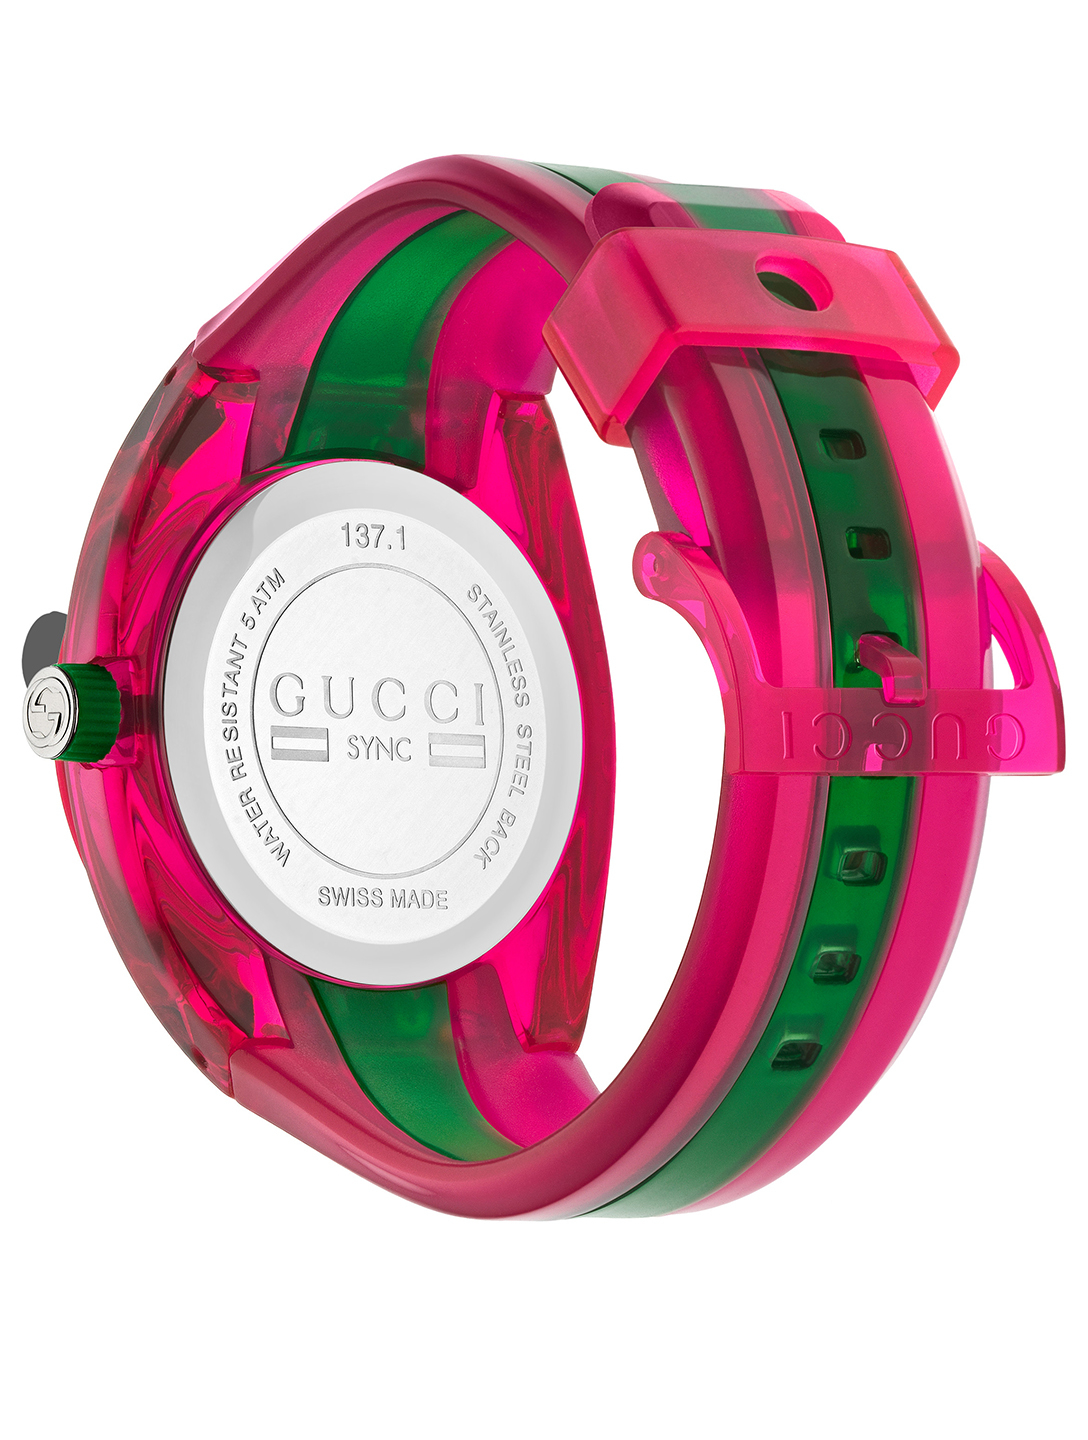 GUCCI Gucci Sync Watch Men's Multi